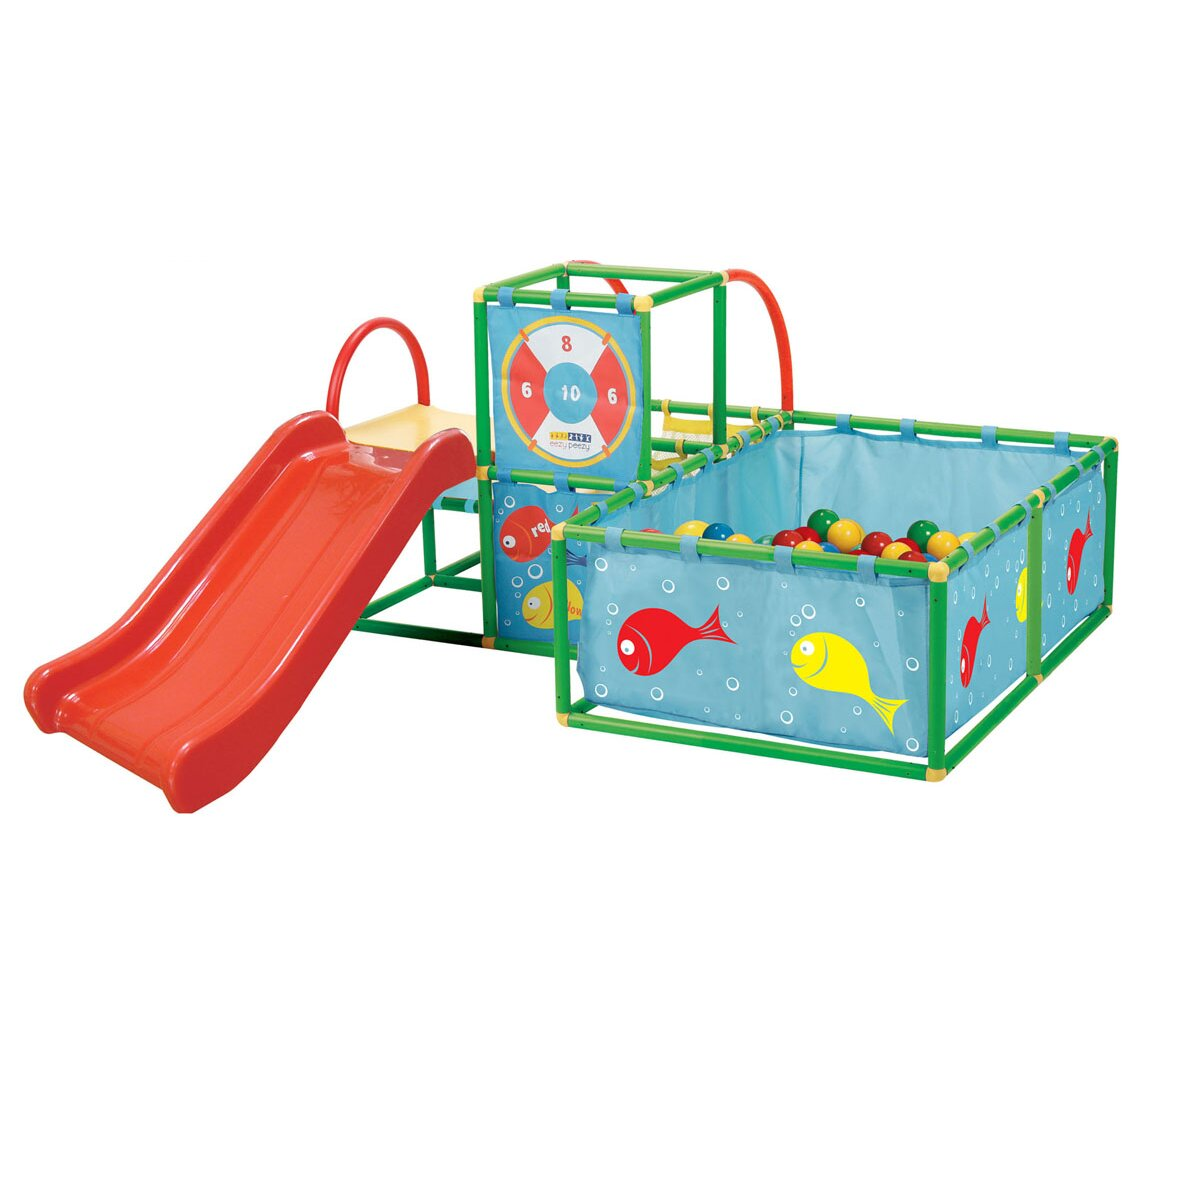 Toy monster active play gym set reviews wayfair for Baby jungle gym indoor